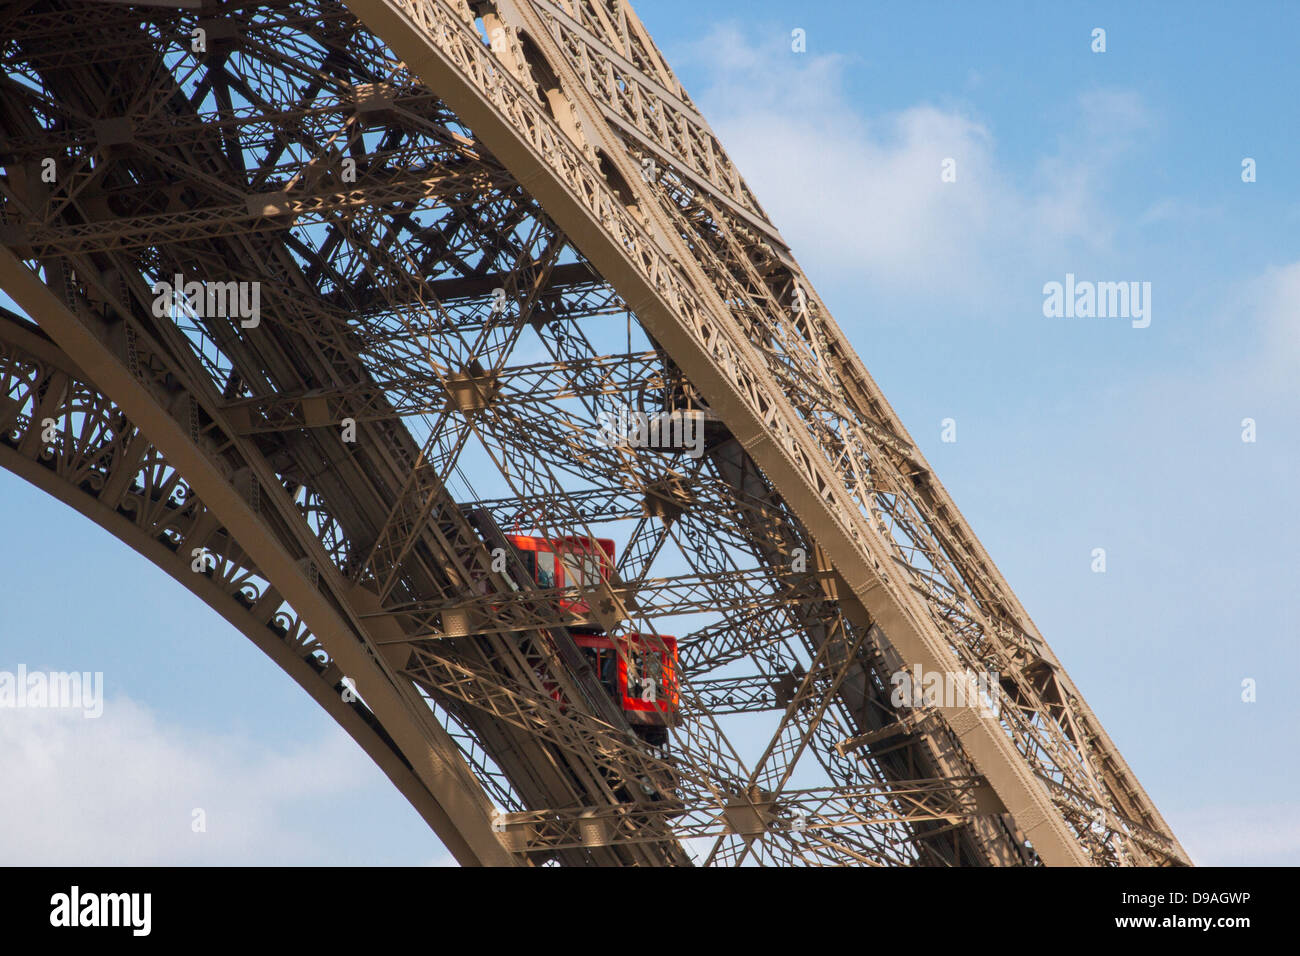 Two bright red elevators climbing up one of Eiffel Tower iron girders bringing tourists to the first floor Stock Photo